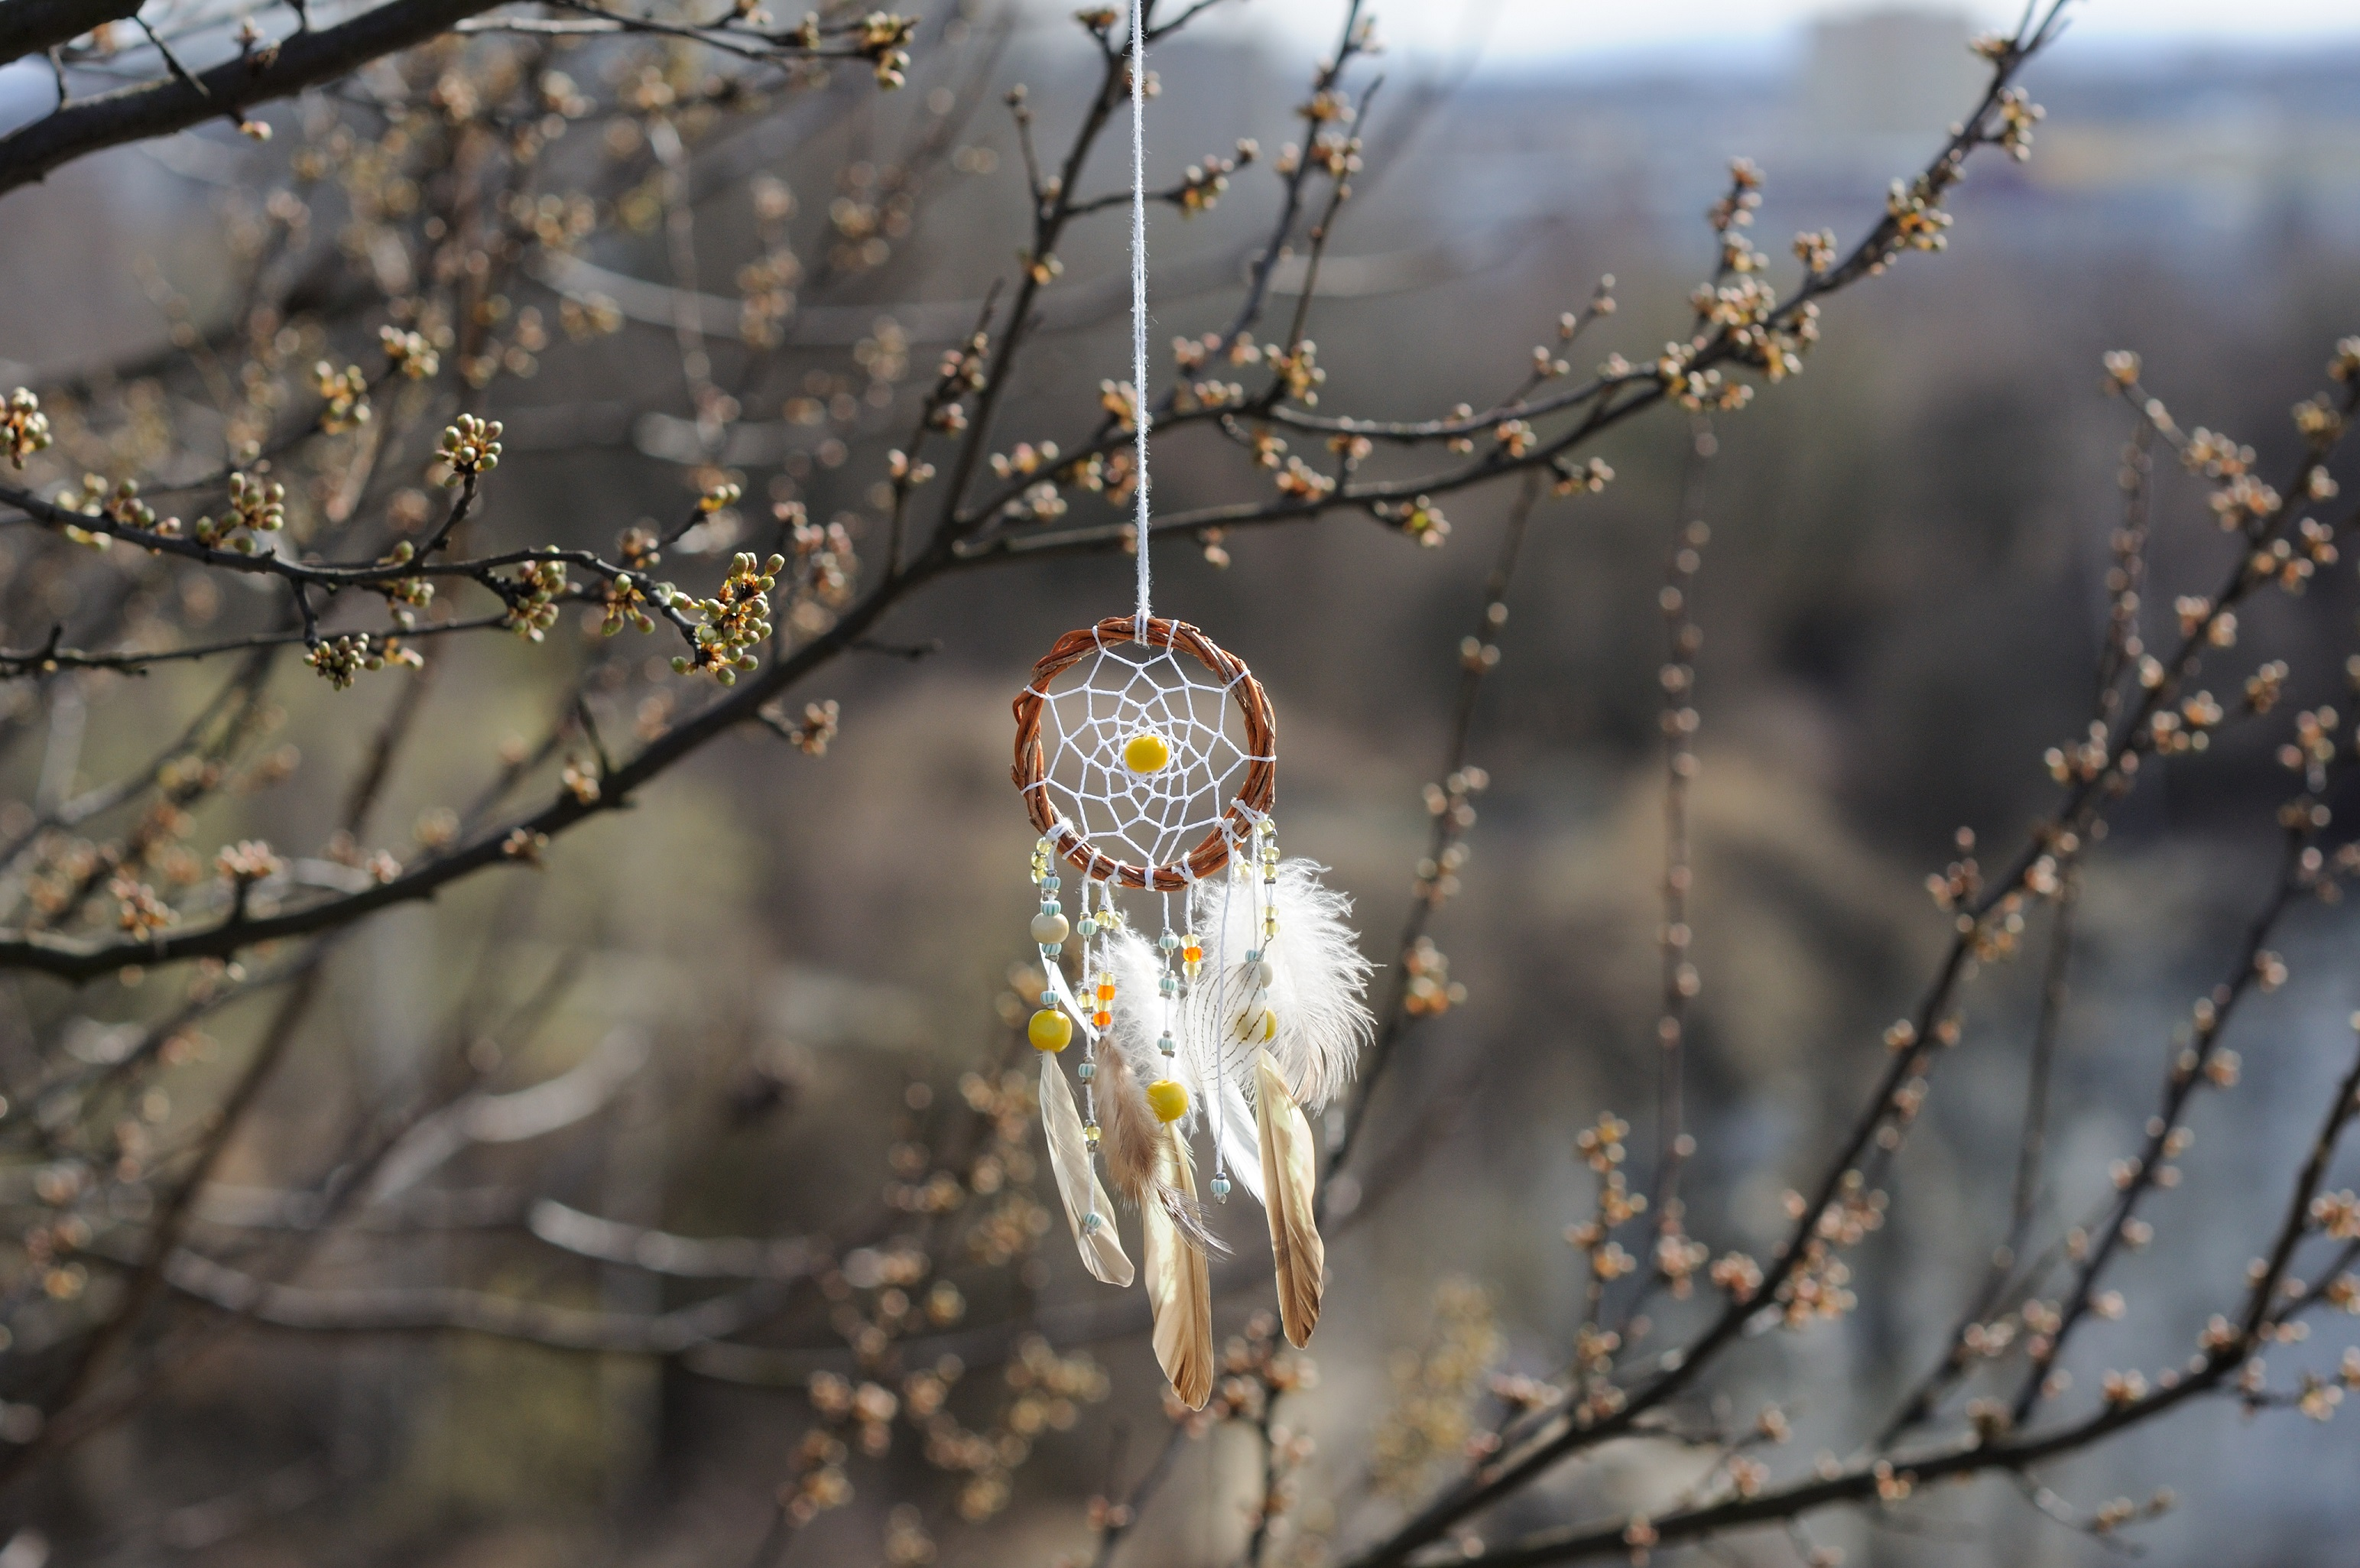 Handmade native american dream catcher on background of rocks and lake. Tribal elements, feathers